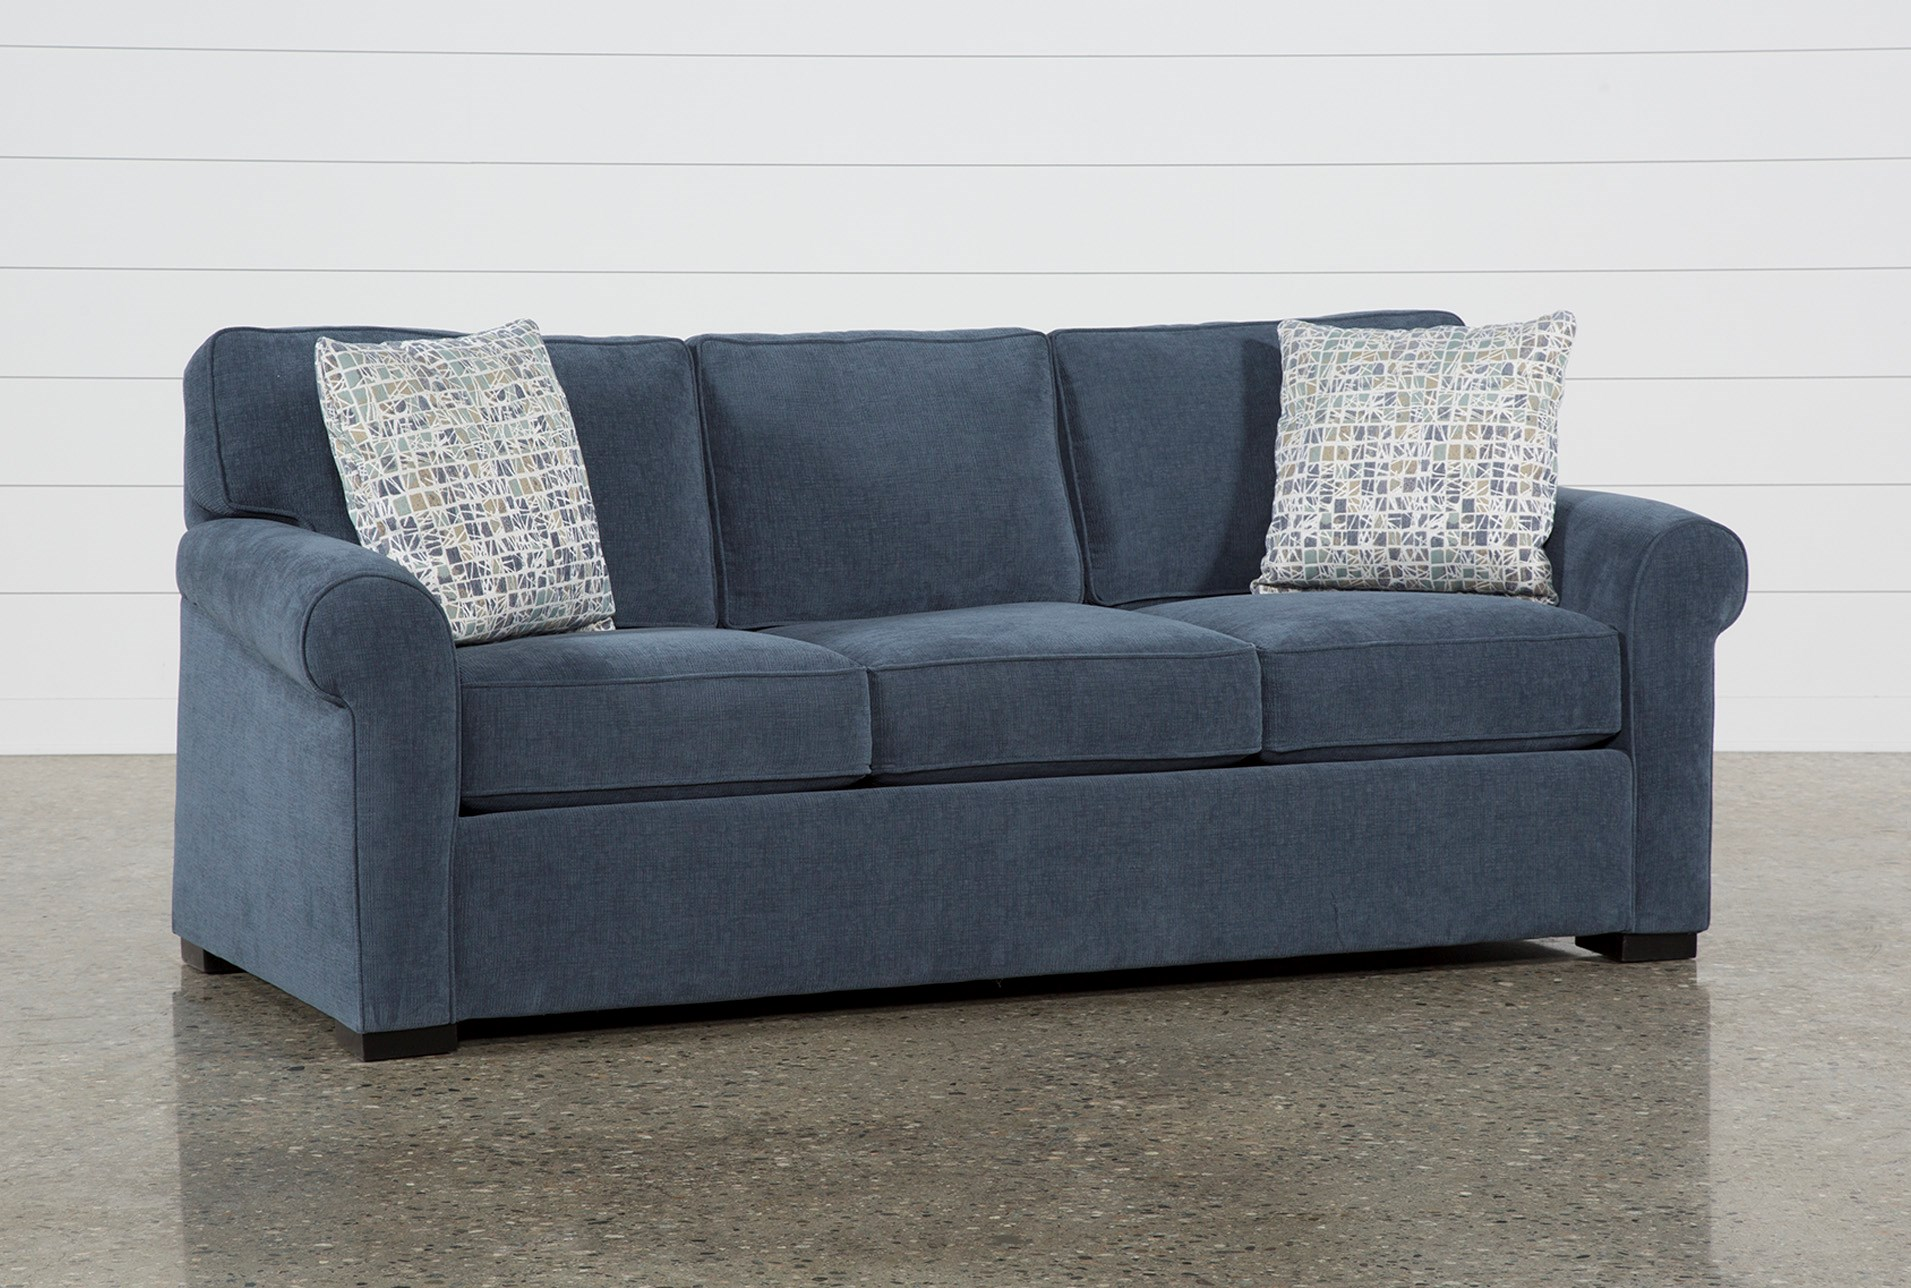 Elm Sofa Qty 1 Has Been Successfully Added To Your Cart